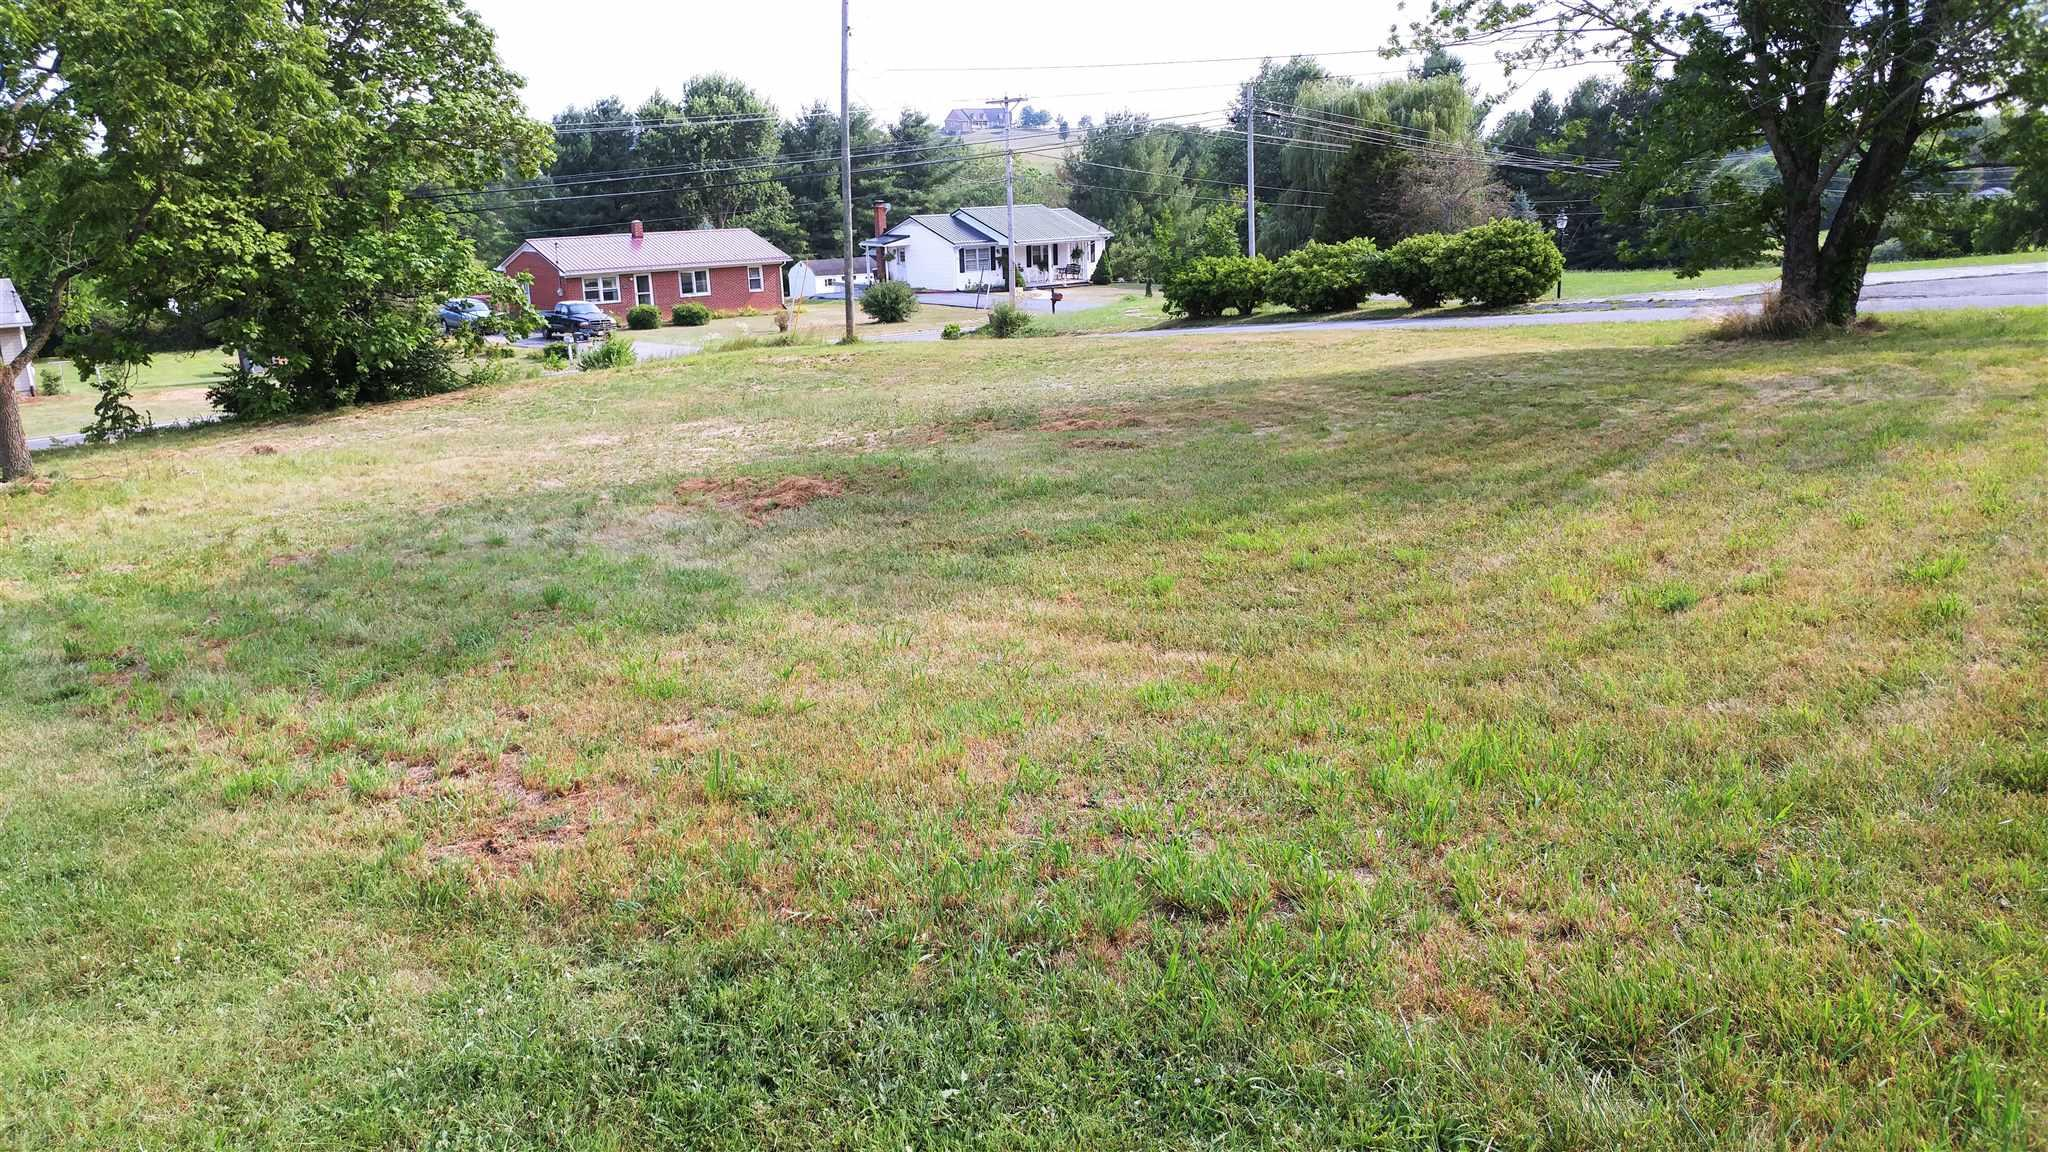 Nice semi-level .301 acre vacant lot for sale just outside Christiansburg town limits. Lot has no town water, sewer, or septic. Easy access to Interstate 81.